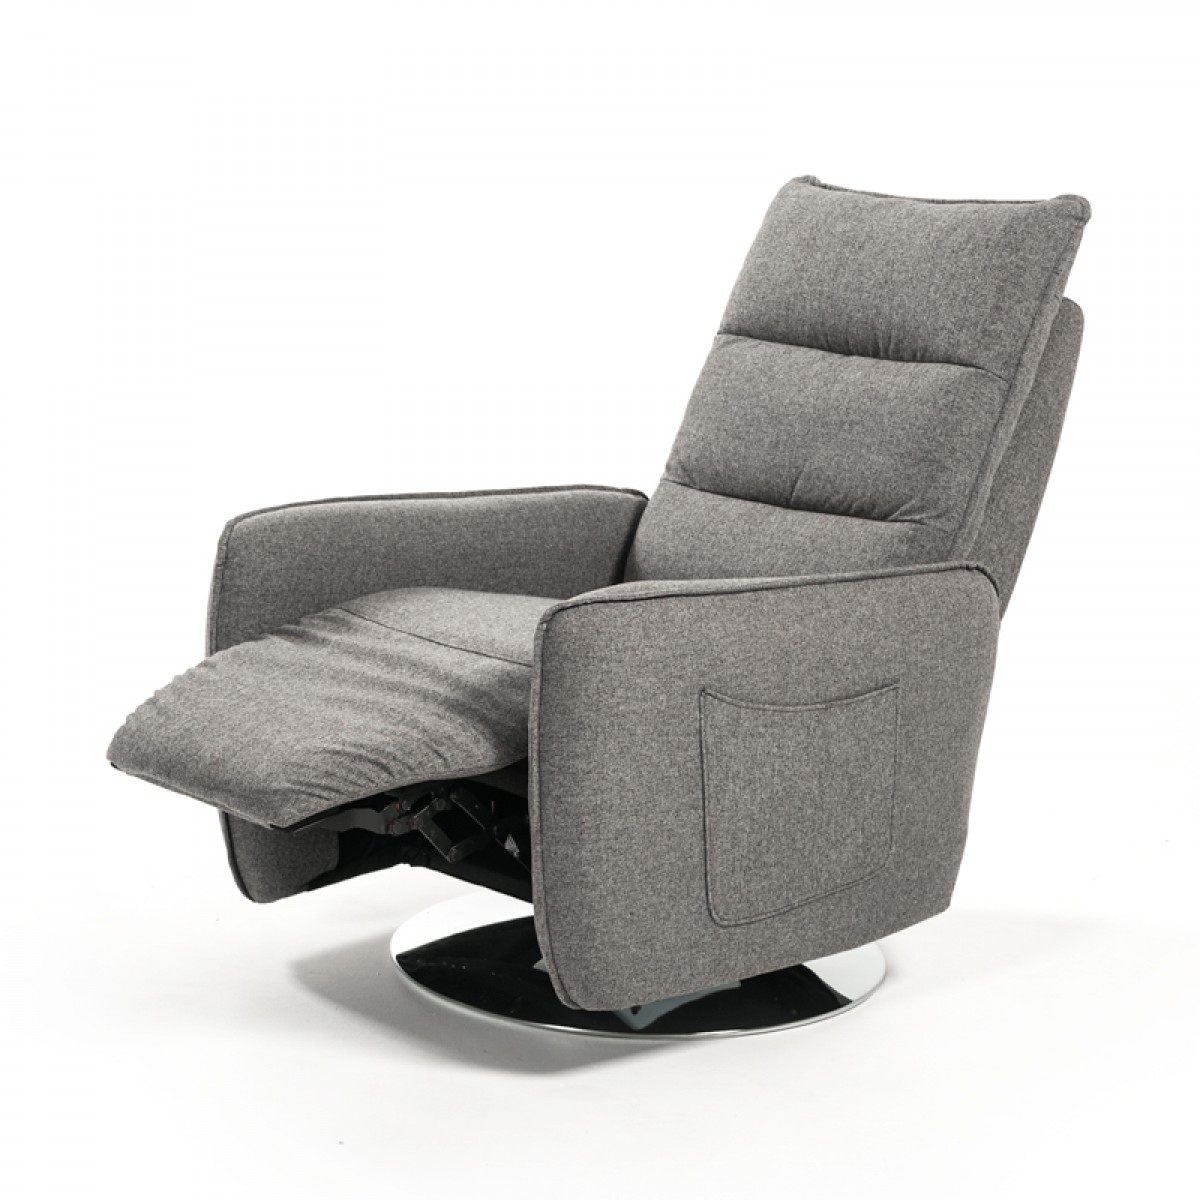 Divani Casa Manitoba Modern Grey Leather Electric Recliner Chair  sc 1 st  VIG Furniture & Divani Casa Fairfax Modern Grey Fabric Recliner Chair - Reclining ... islam-shia.org